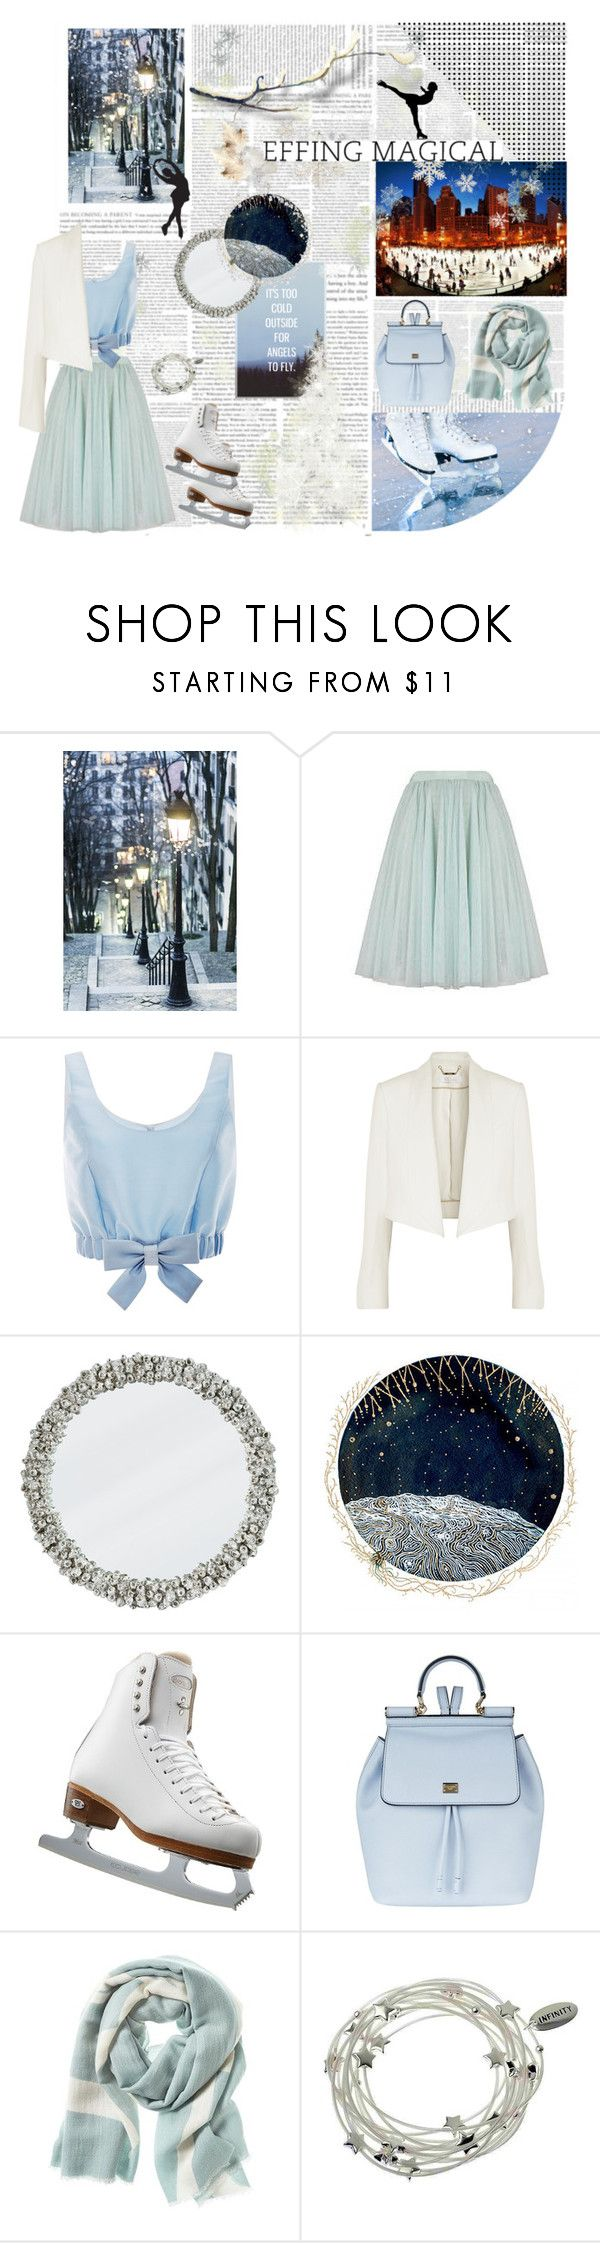 """Ice Skating Style"" by annelaurousen ❤ liked on Polyvore featuring WALL, Ted Baker, Honor, Chloé, Riedell, Dolce&Gabbana, Banana Republic, Majique and iceskatingstyle"